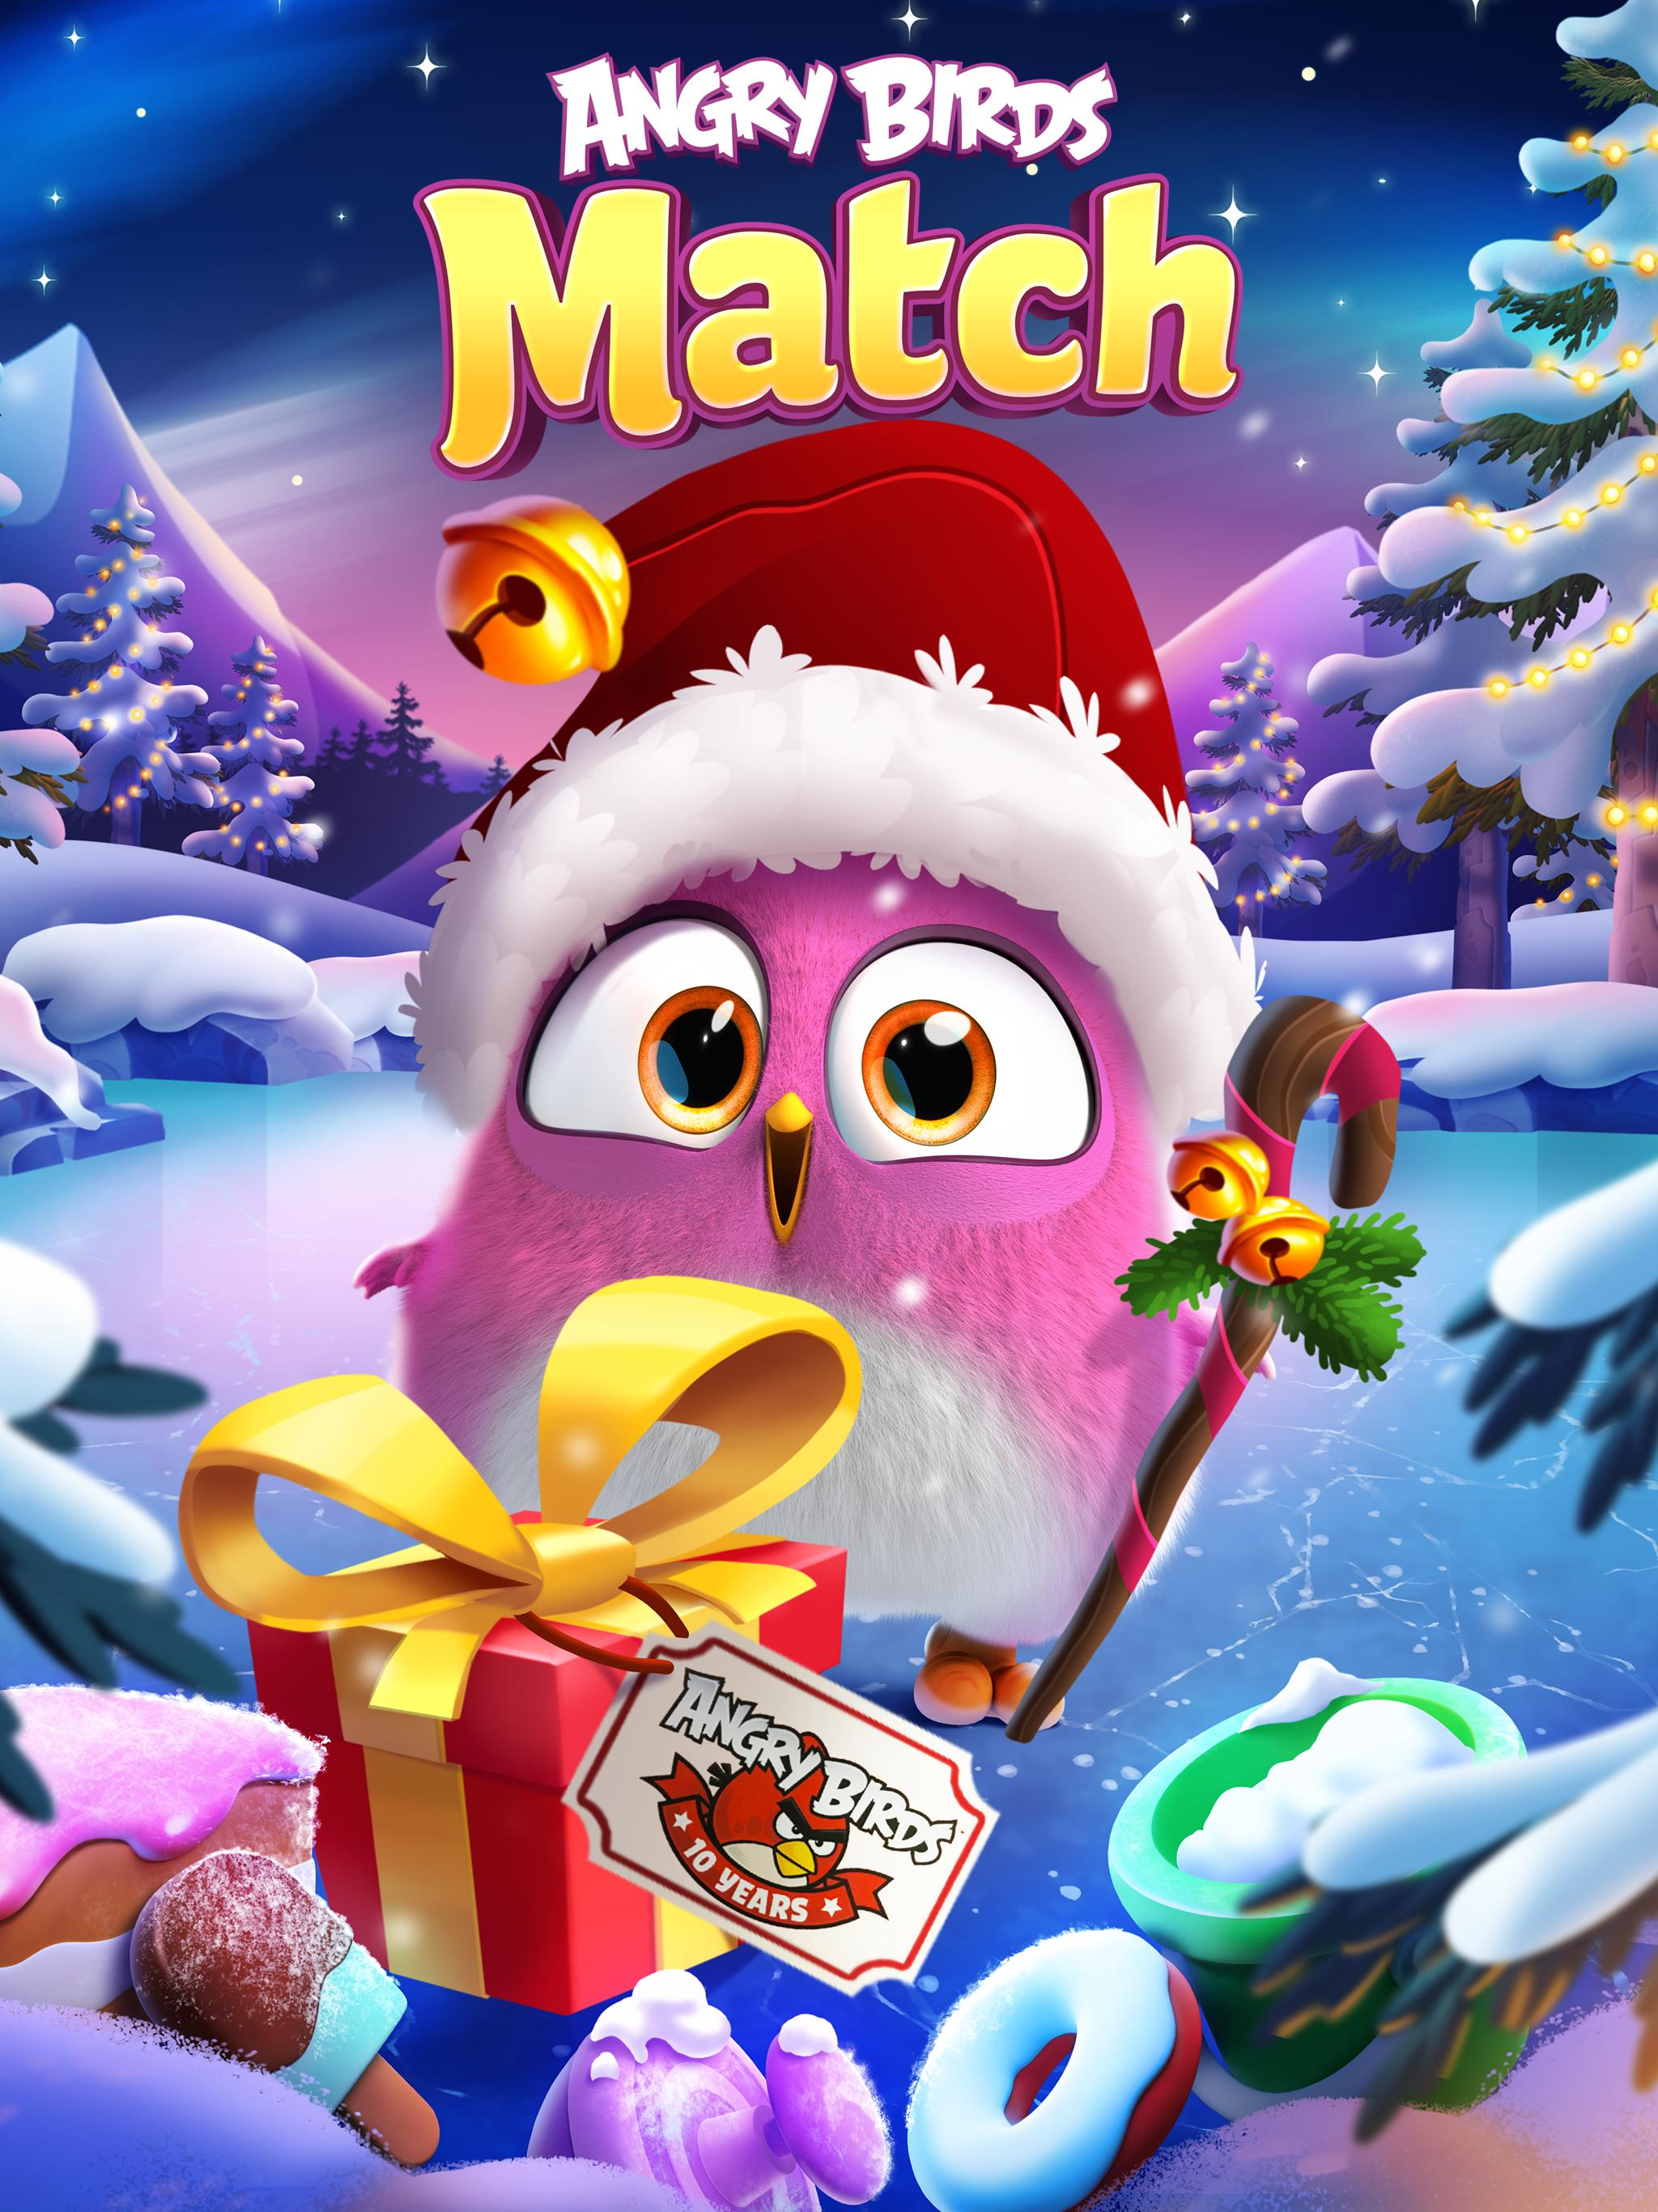 Angry Birds Match 3 3.1.0 Screenshot 16